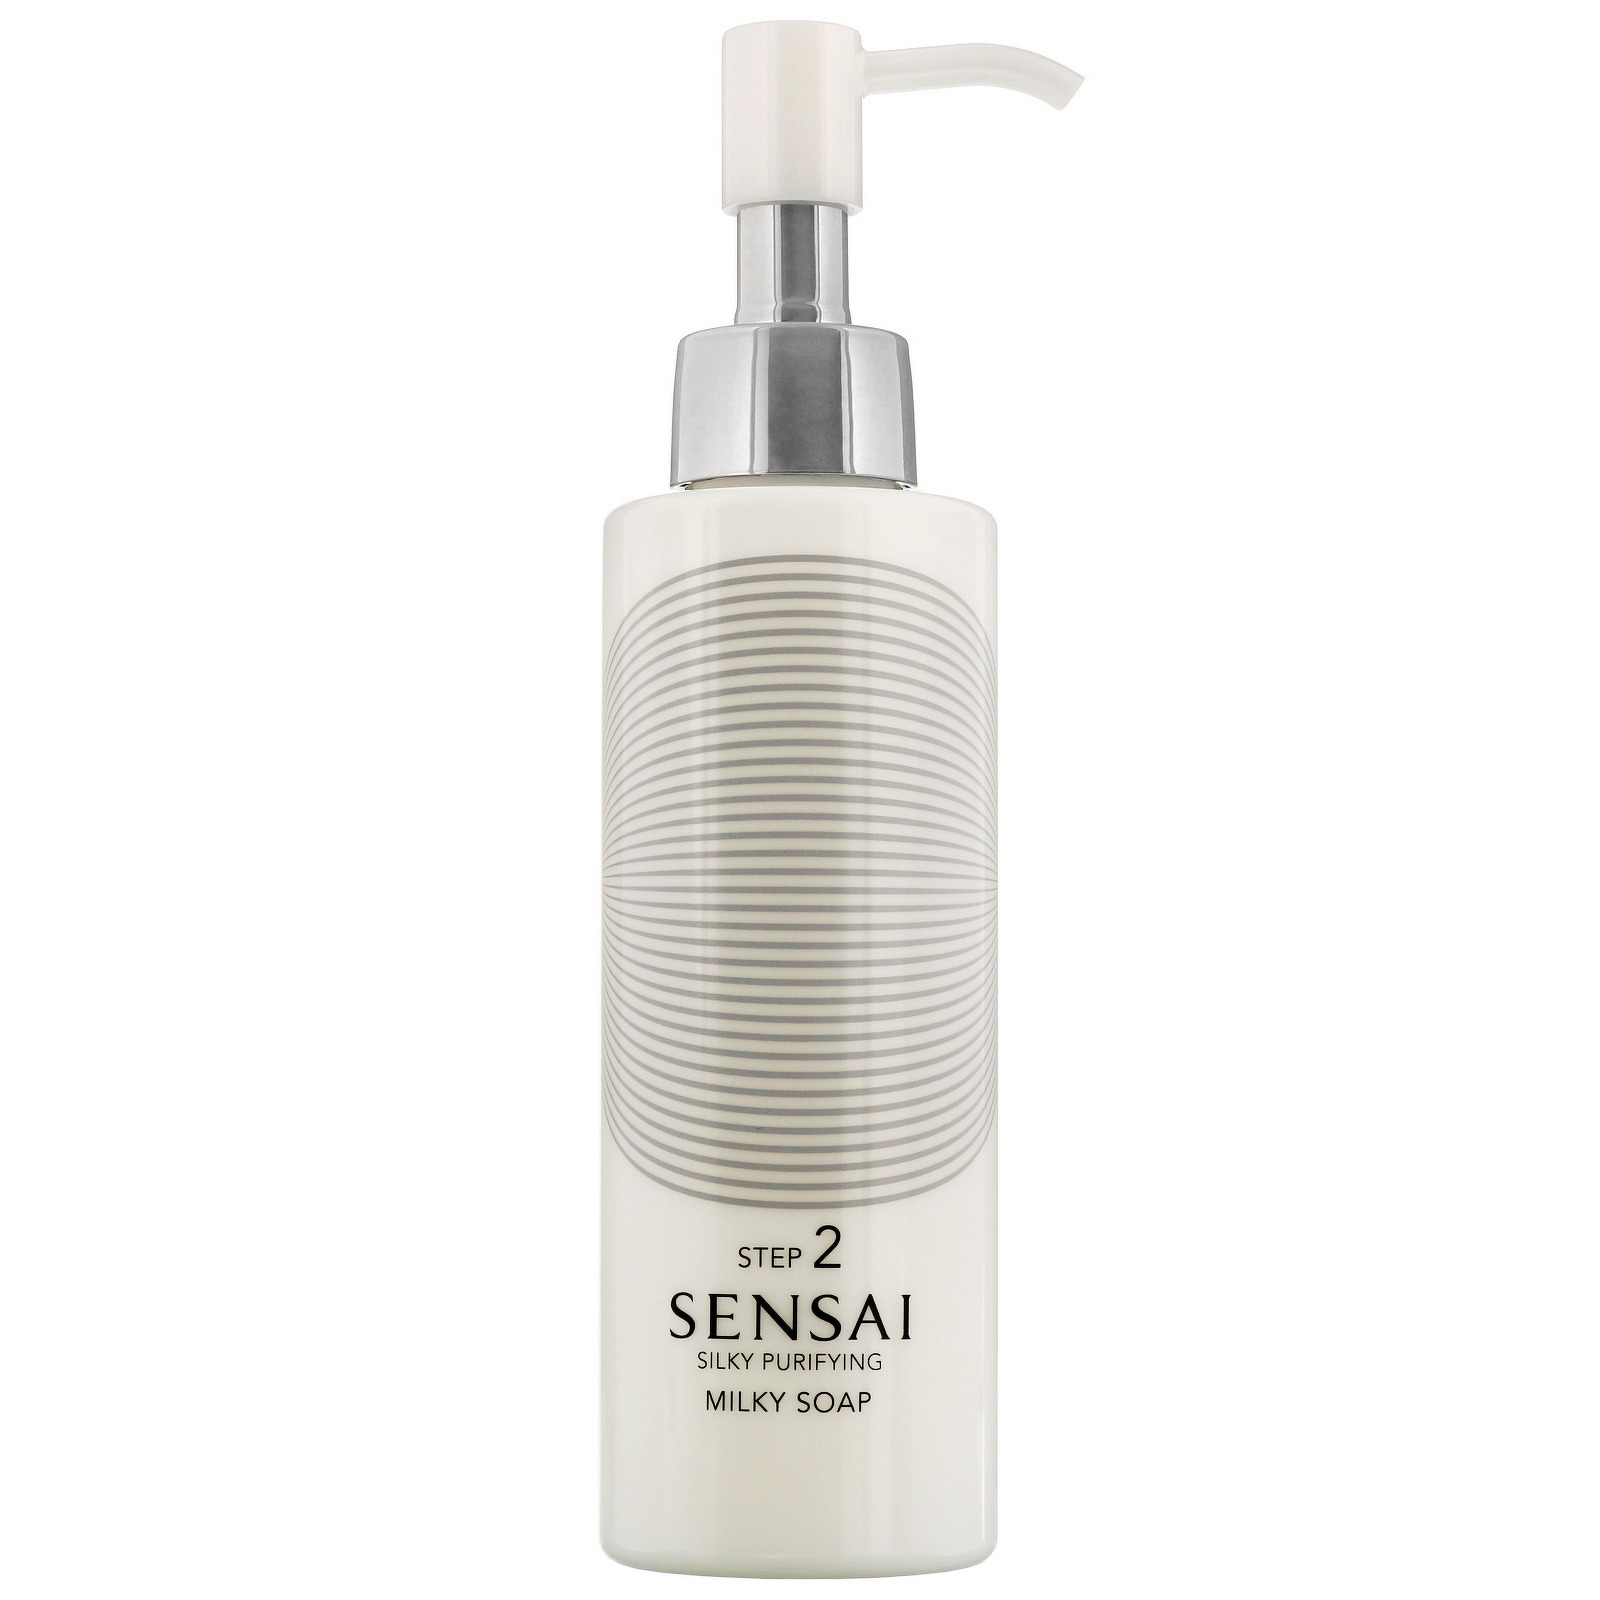 SENSAI Silky Purifying Step 2 Cleanse & Purify Milky Soap 150ml